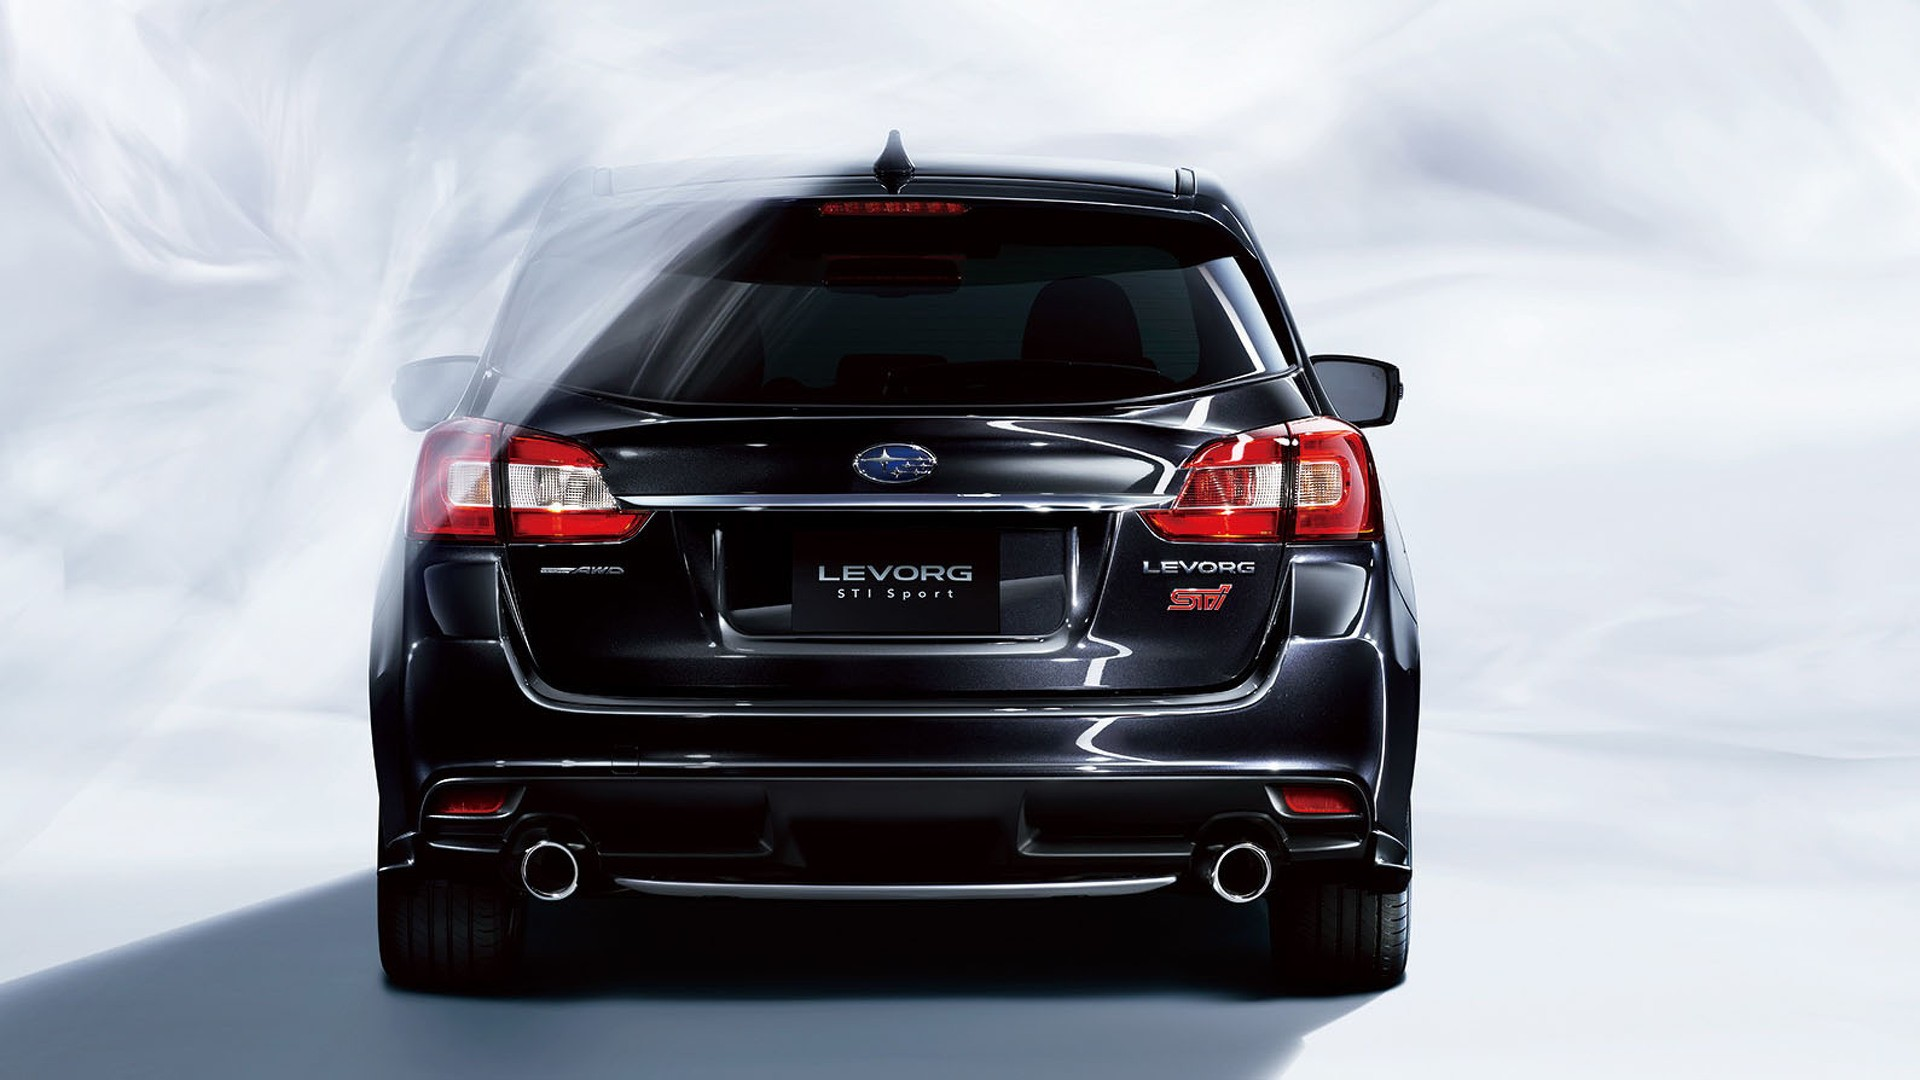 Subaru Reveals Levorg Sti Sport With And Turbo Engines In Japan on Subaru Boxer Engine